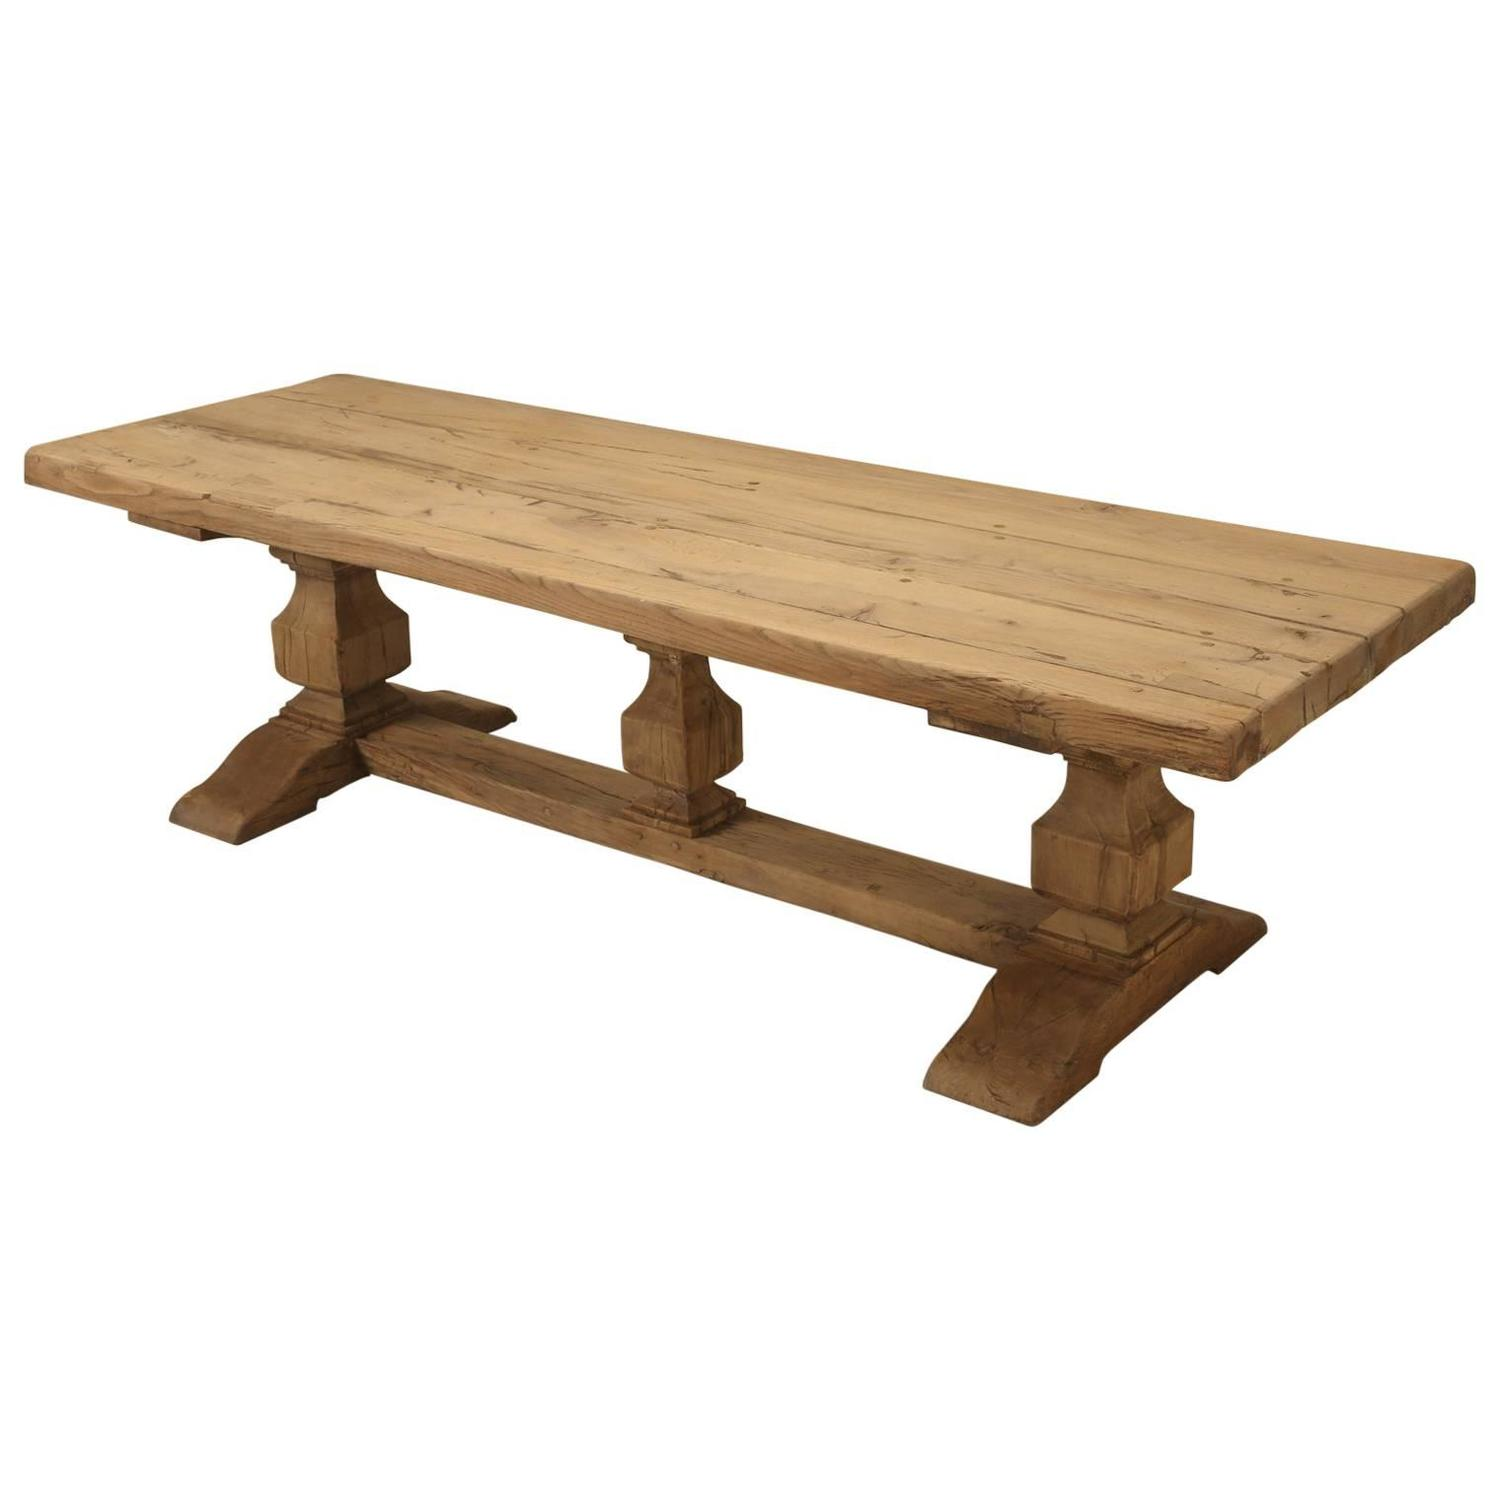 French trestle antique dining table for sale at 1stdibs - Antique french dining tables ...